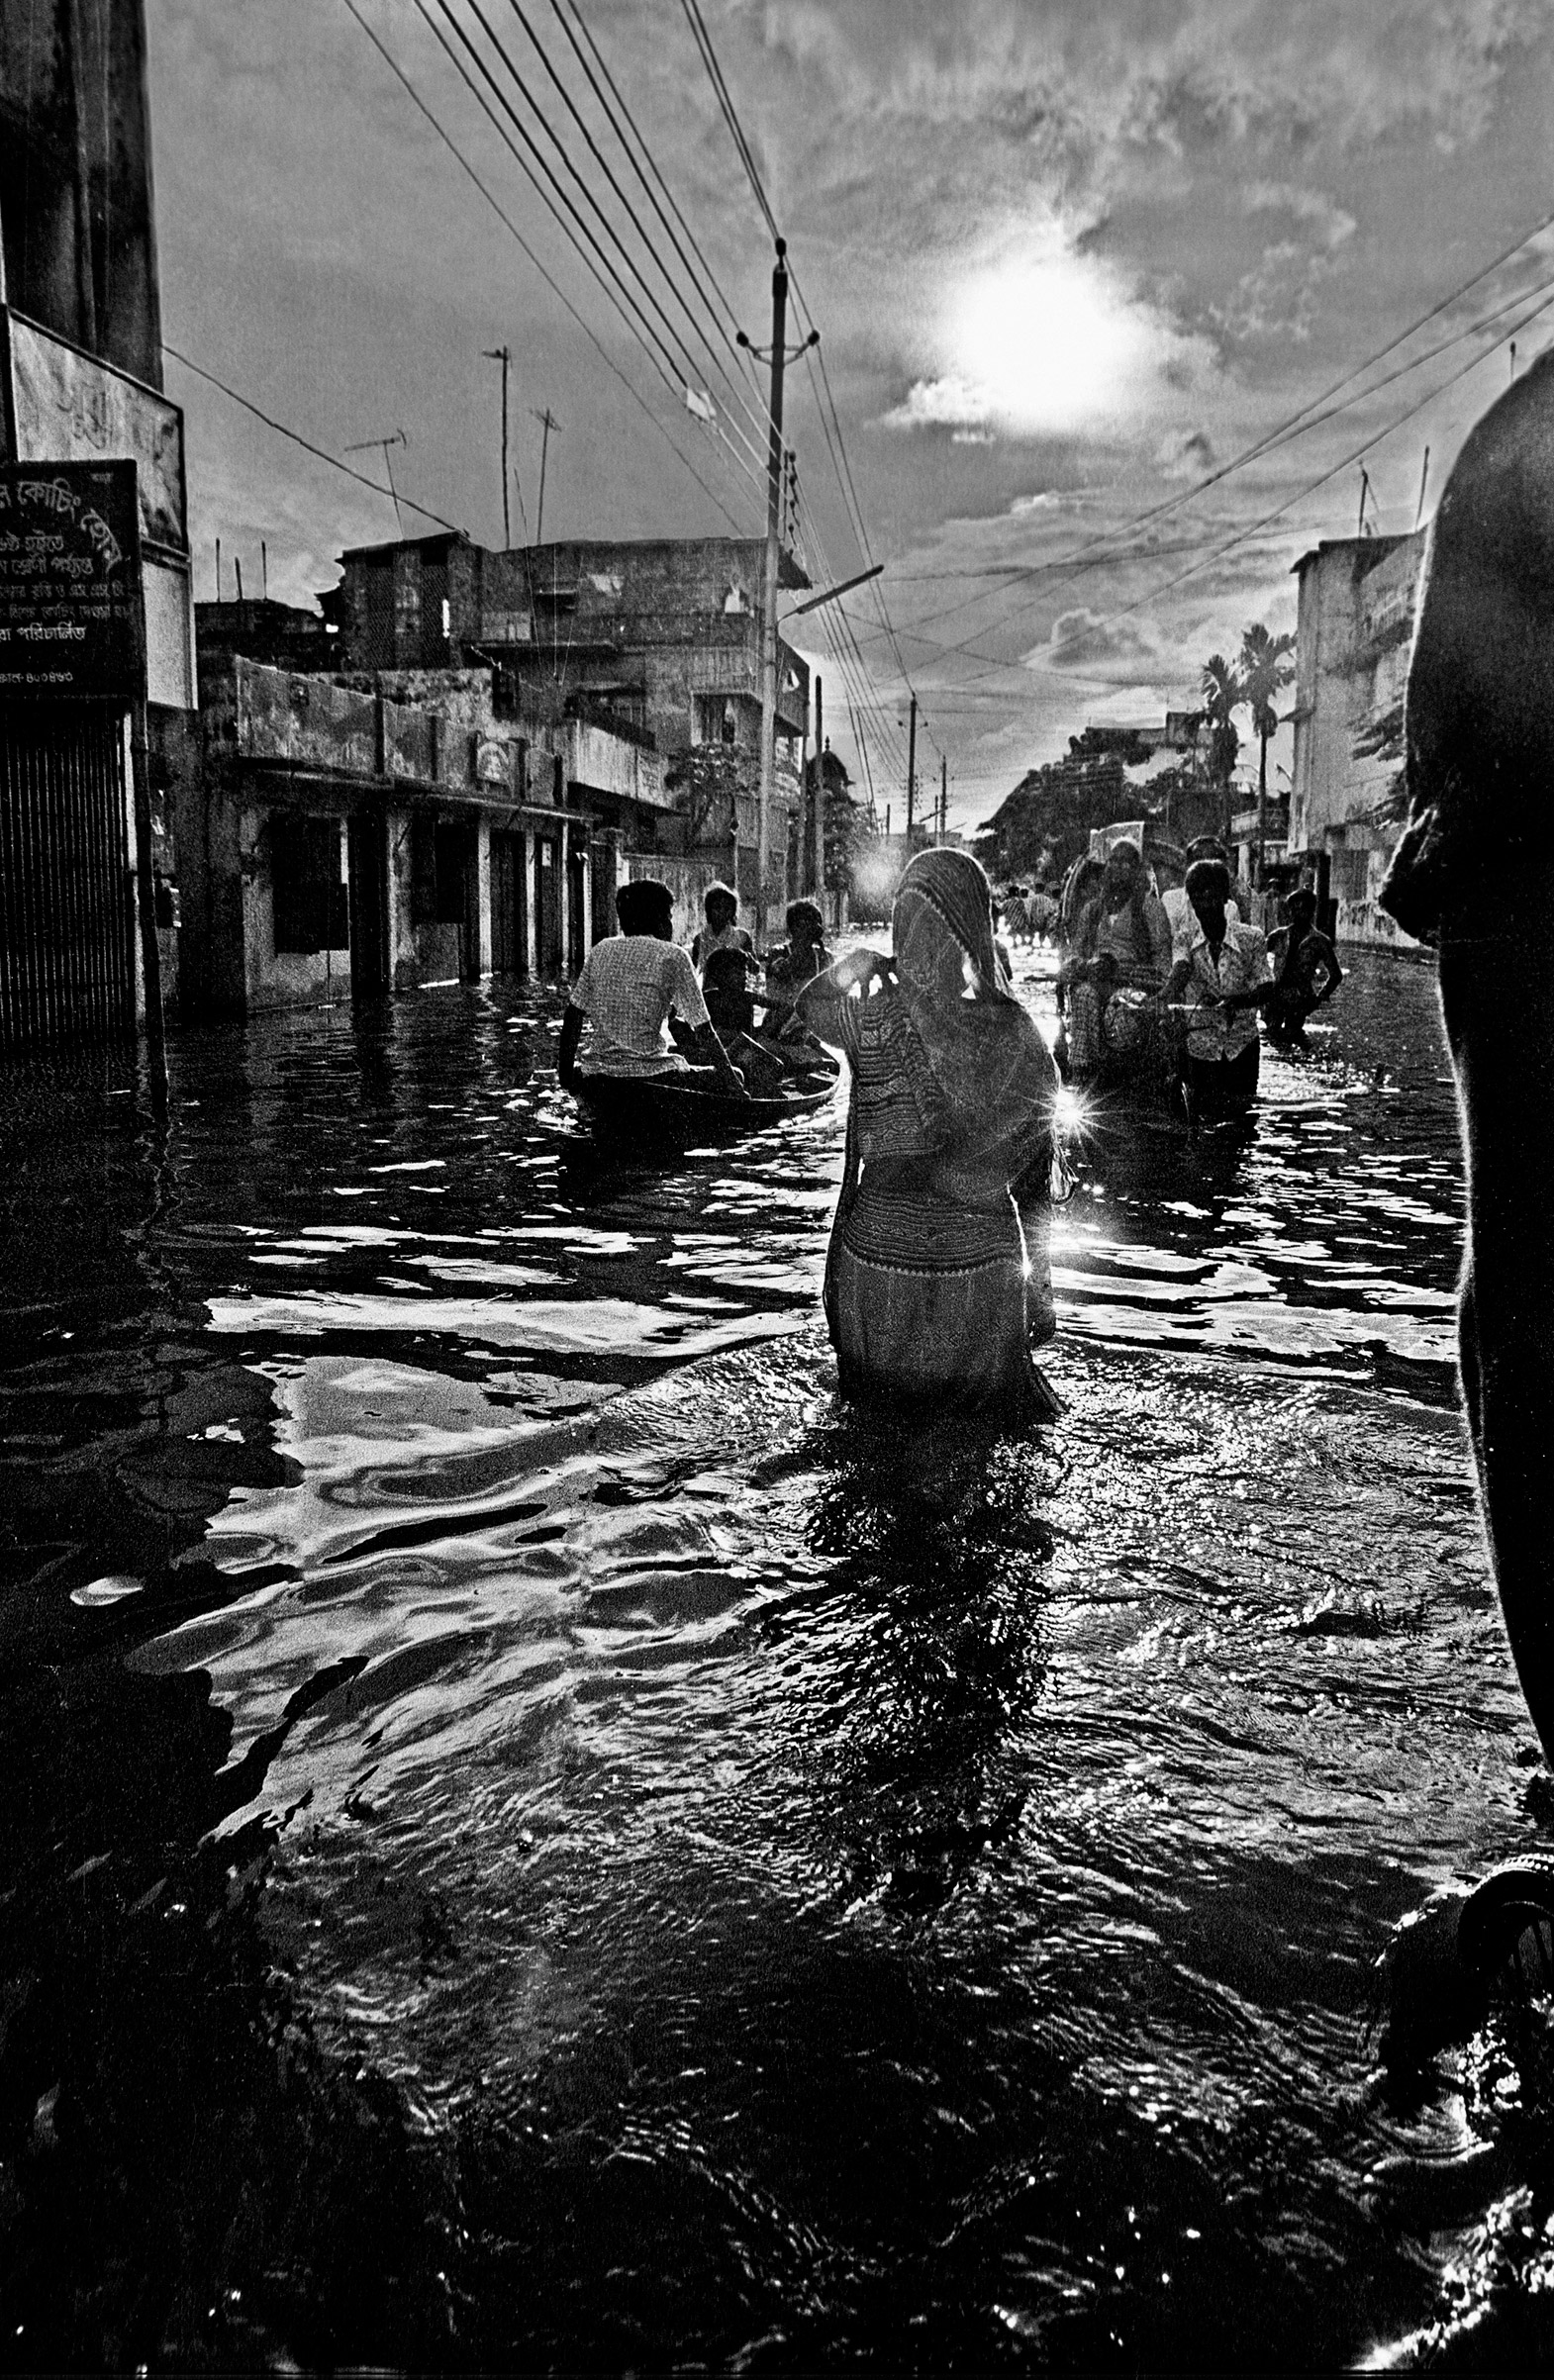 Woman wading in flood waters, Kamalapur, Dhaka, Bangladesh. 1988.